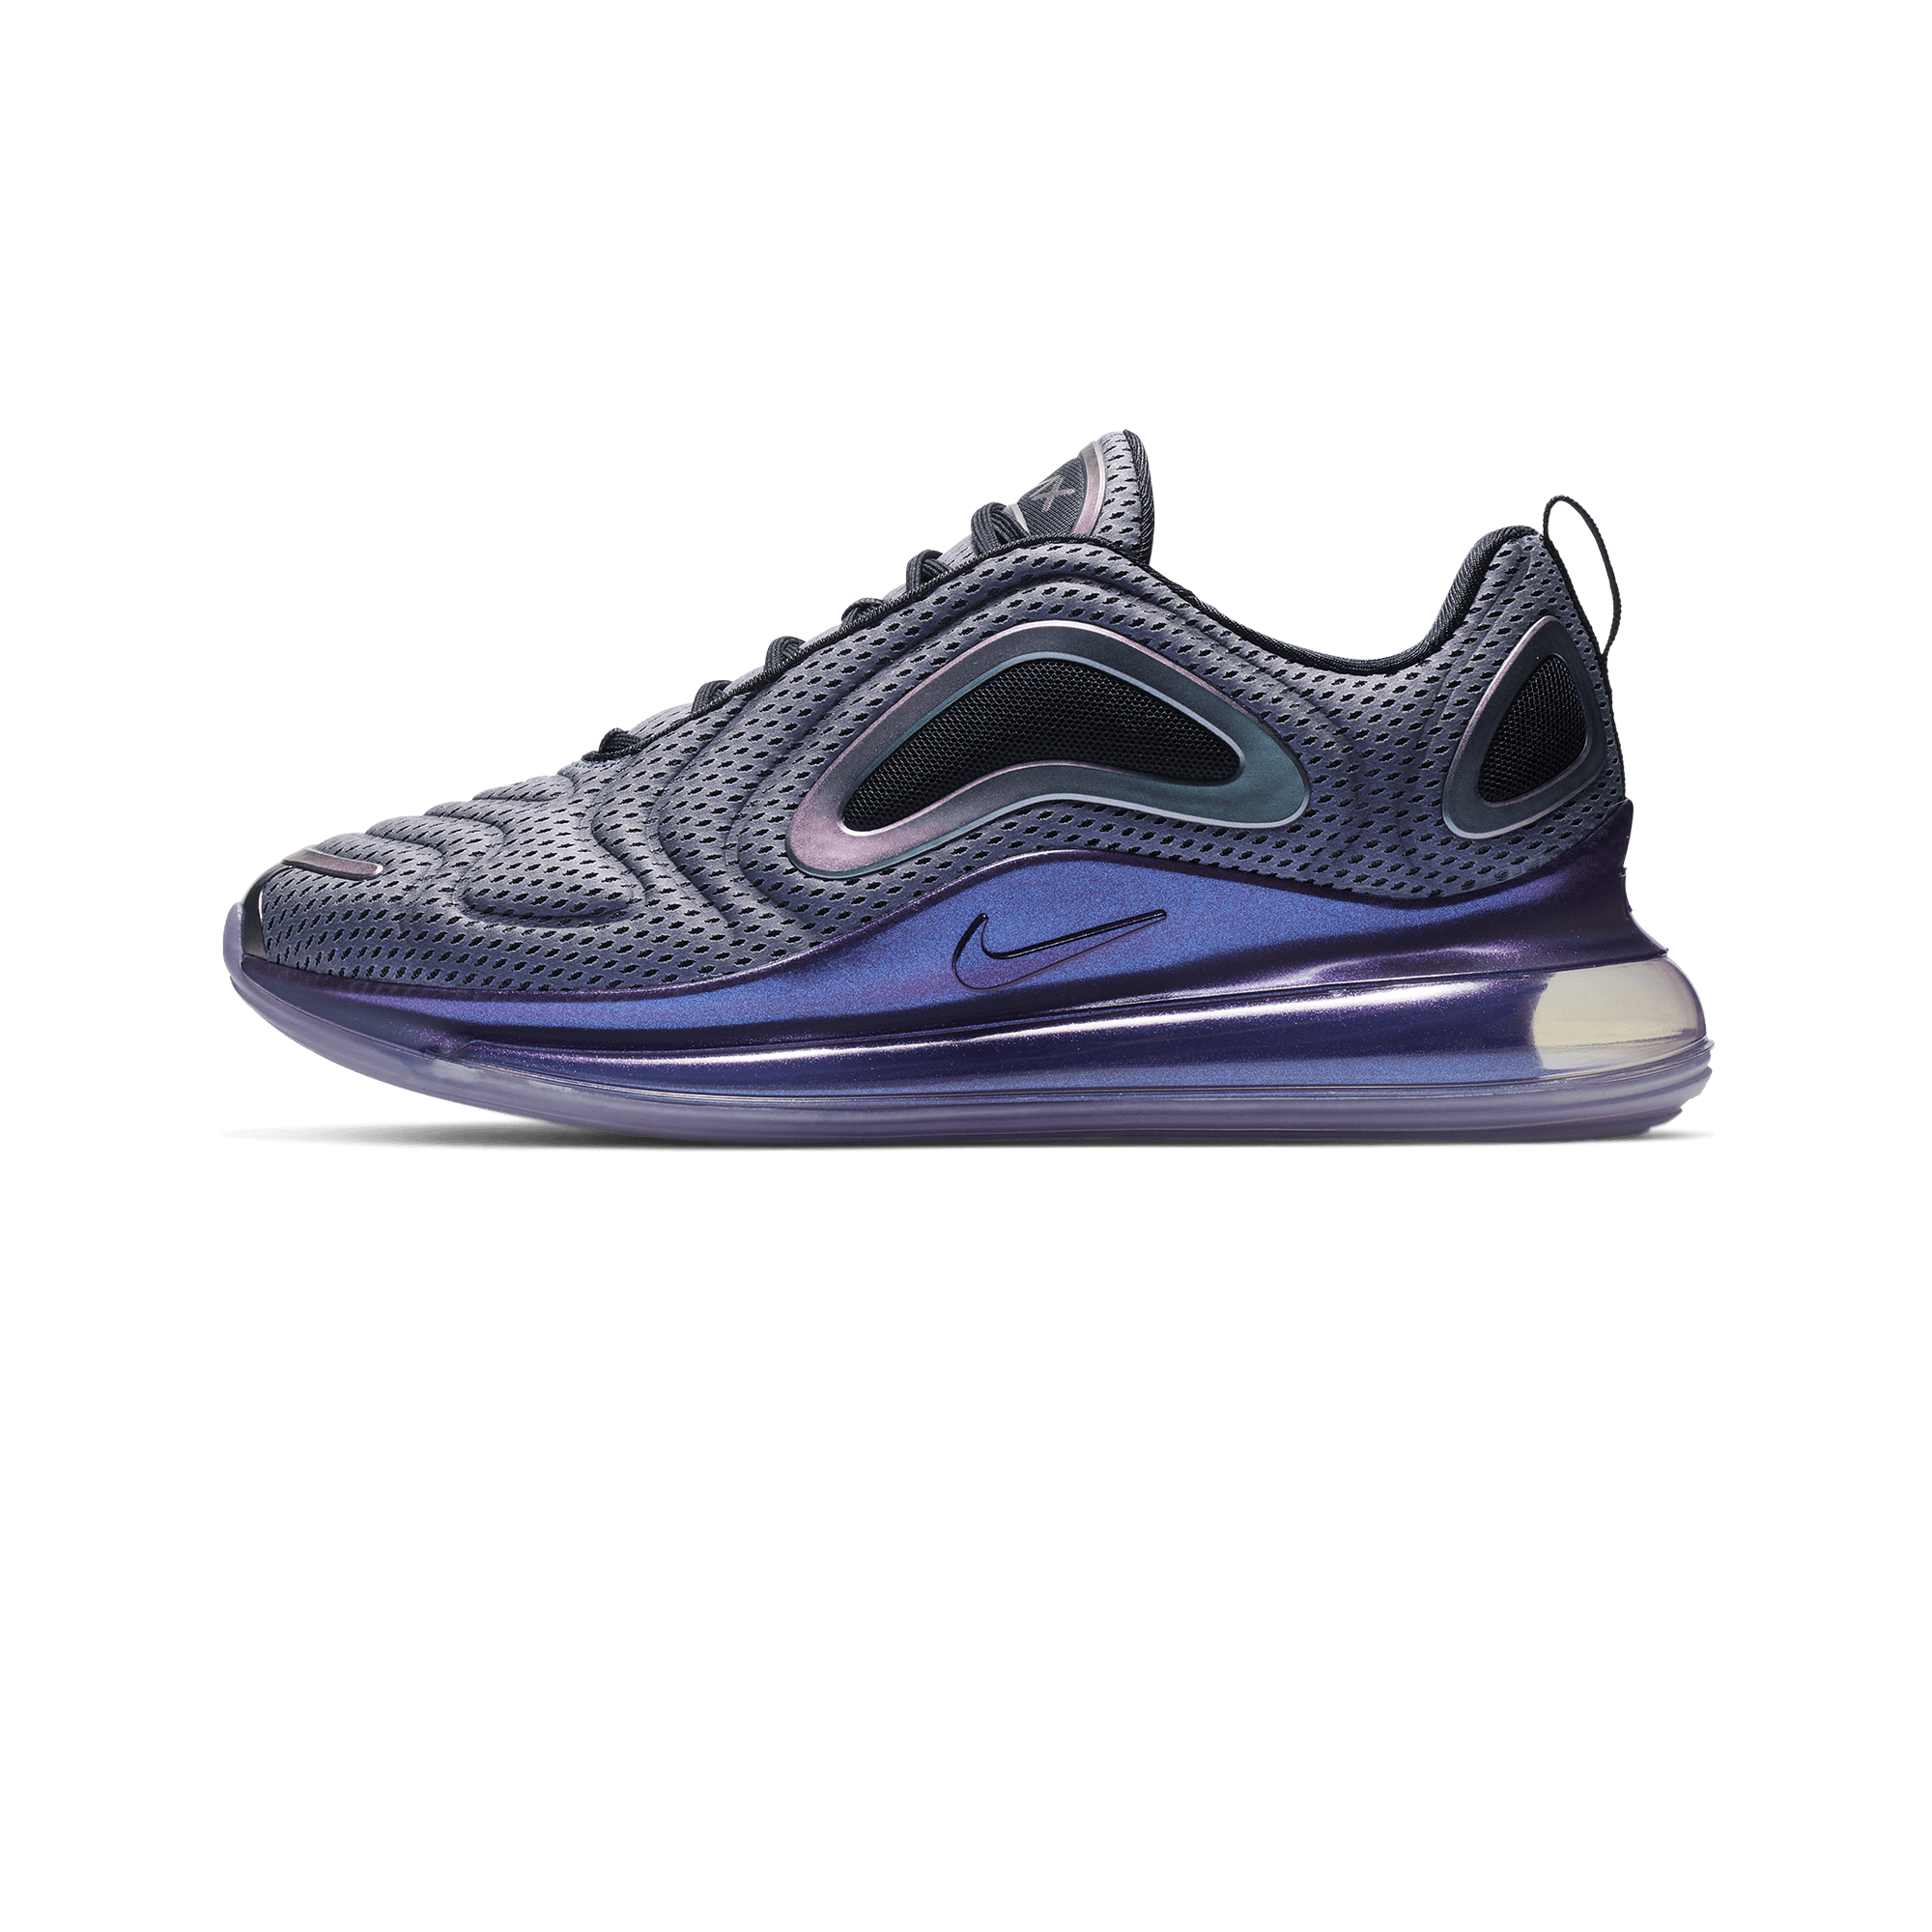 Nike Air Max 720 Northern Lights metallic silverblack